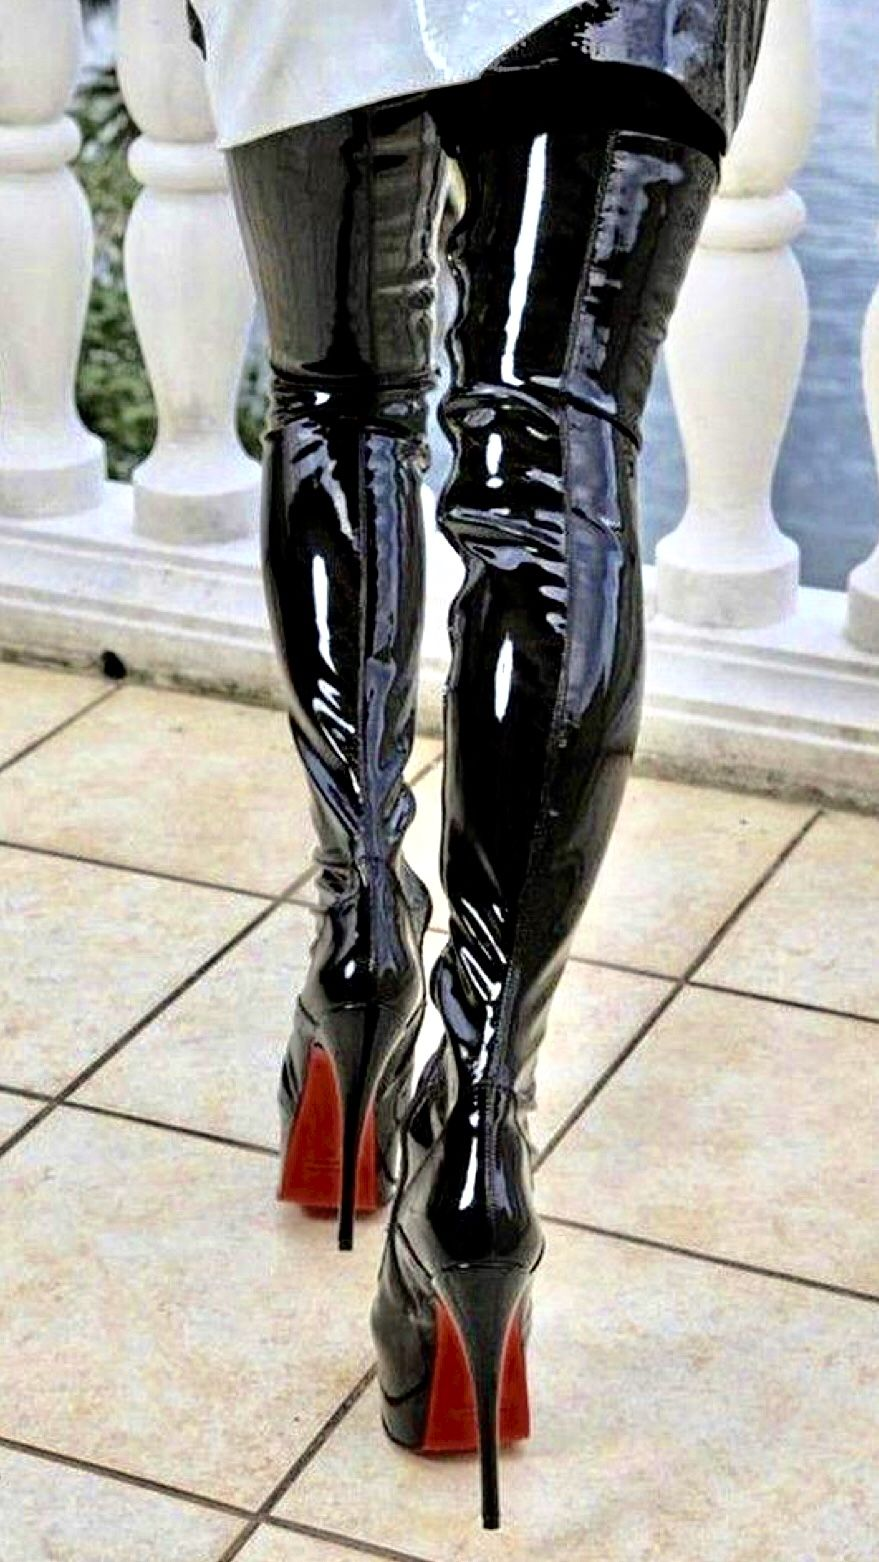 8e5ef78c5a0 Pin by Joey Logan on Shoes an boots in 2019 | High heel boots, Heeled  boots, Boots